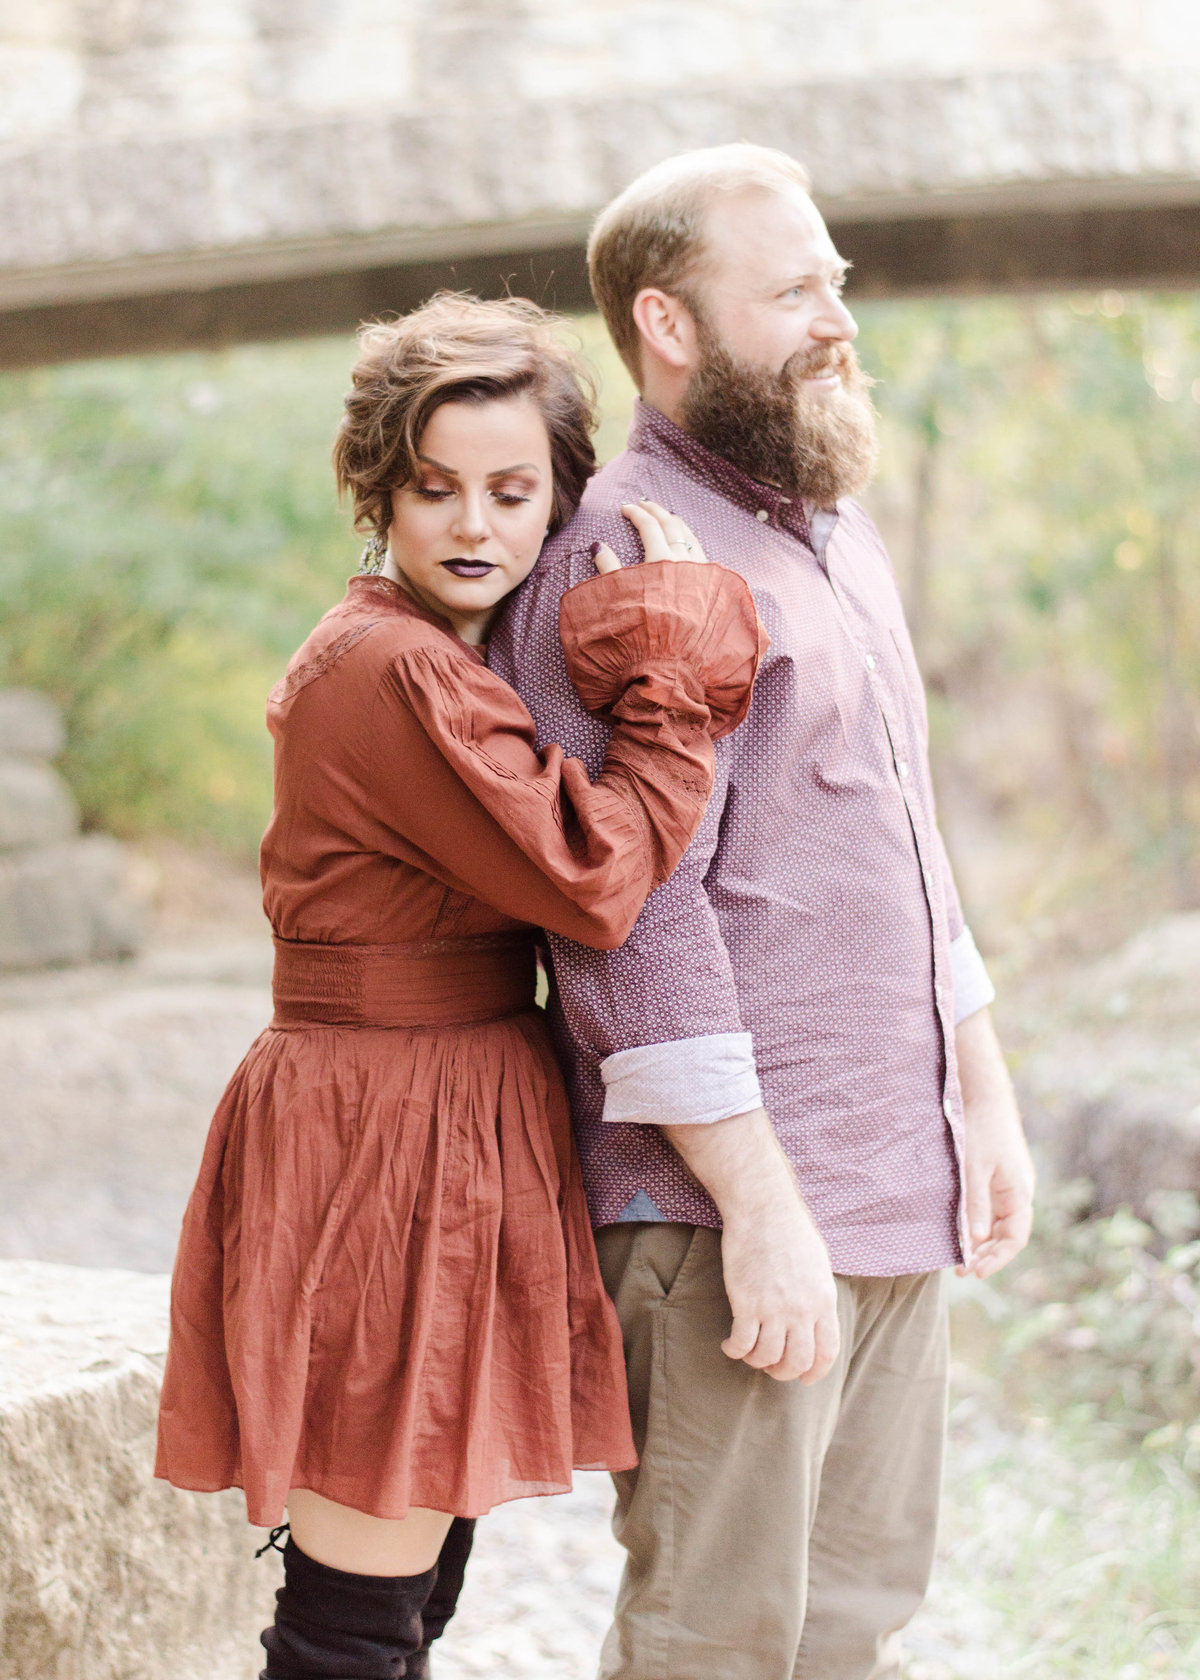 alison brooke photography texas/oklahoma engagement photographer